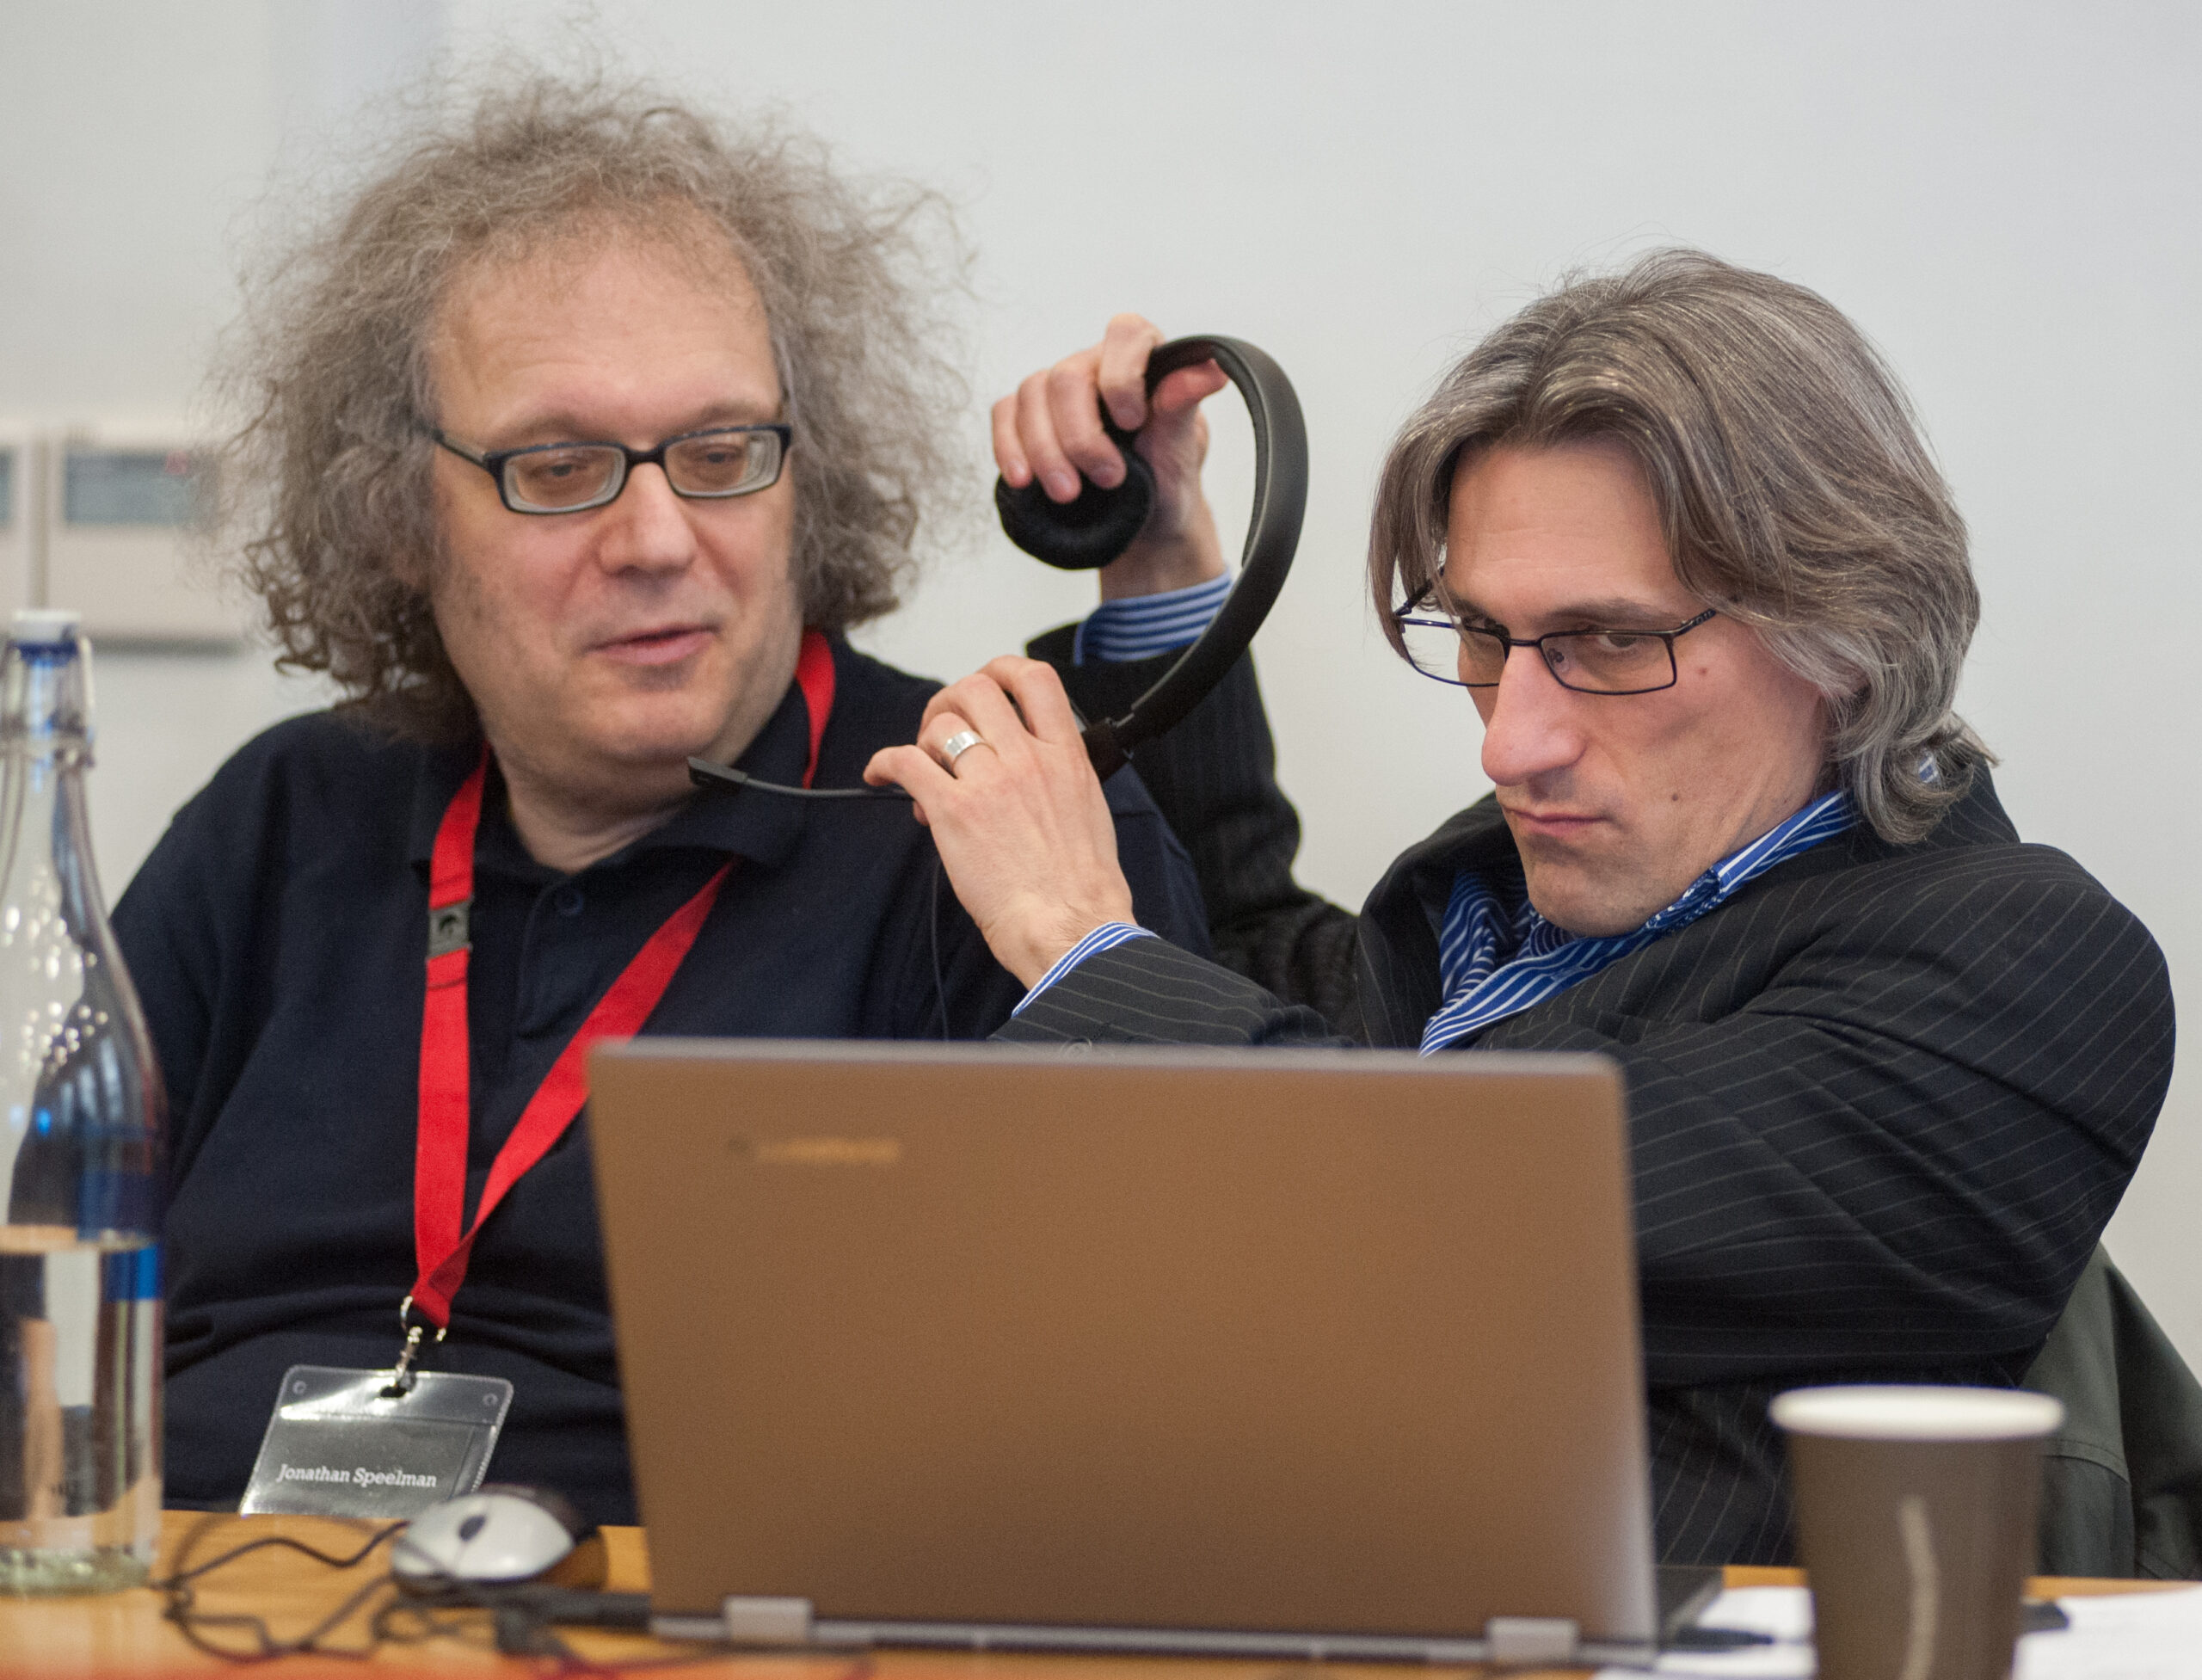 Jonathan Speelman and Daniel King share headphones at the 2013 FIDE Candidates event in London, courtesy of John Upham Photography